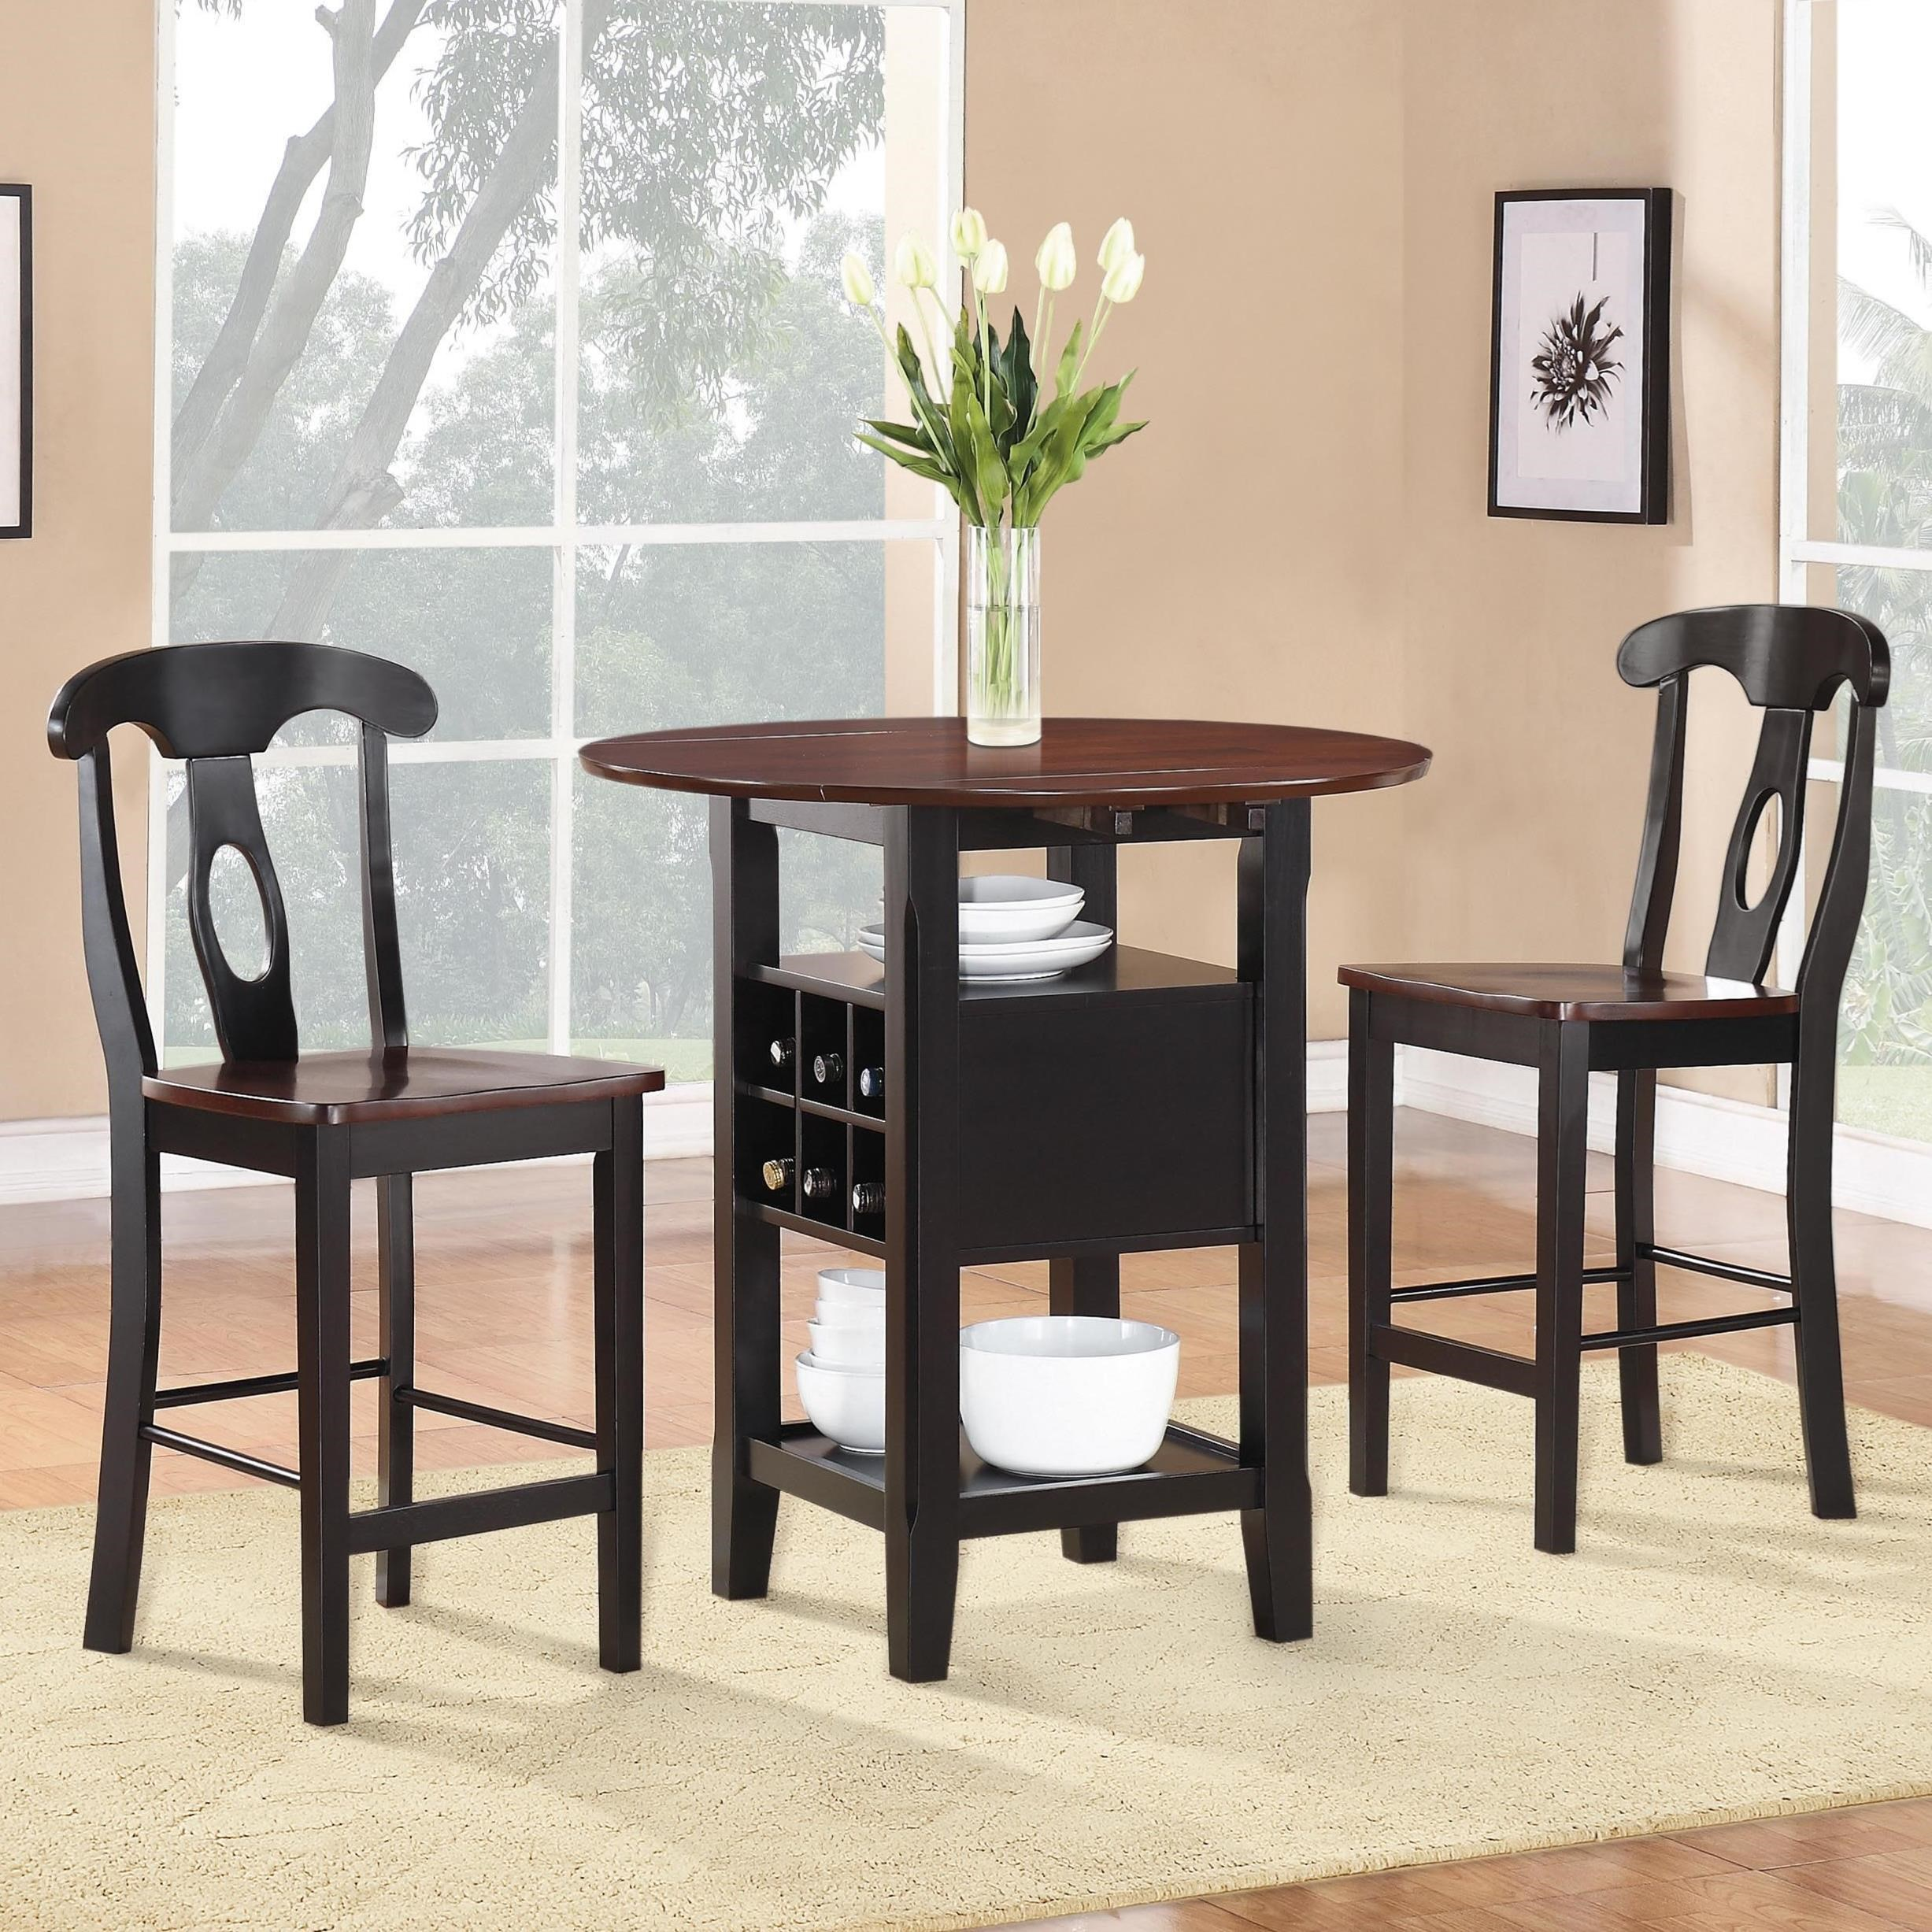 Atwood Pub Table and Chair Set by Homelegance at Carolina Direct